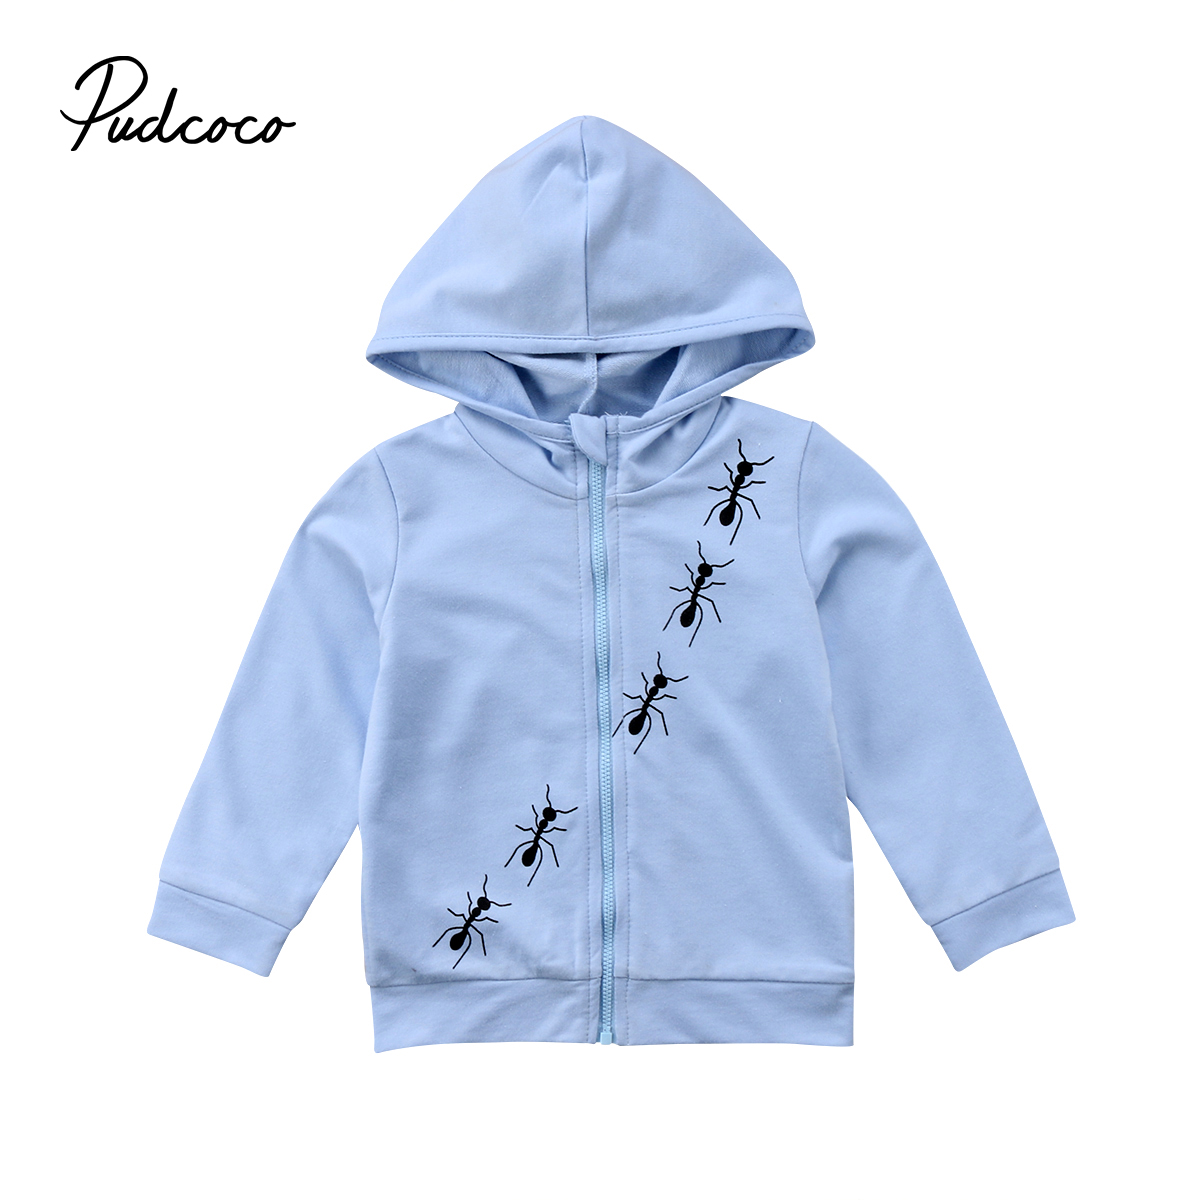 Toddler Kids Baby Boys Girls Winter Warm Hoodies & Sweatshirts Coat Hooded Outerwear Jacket